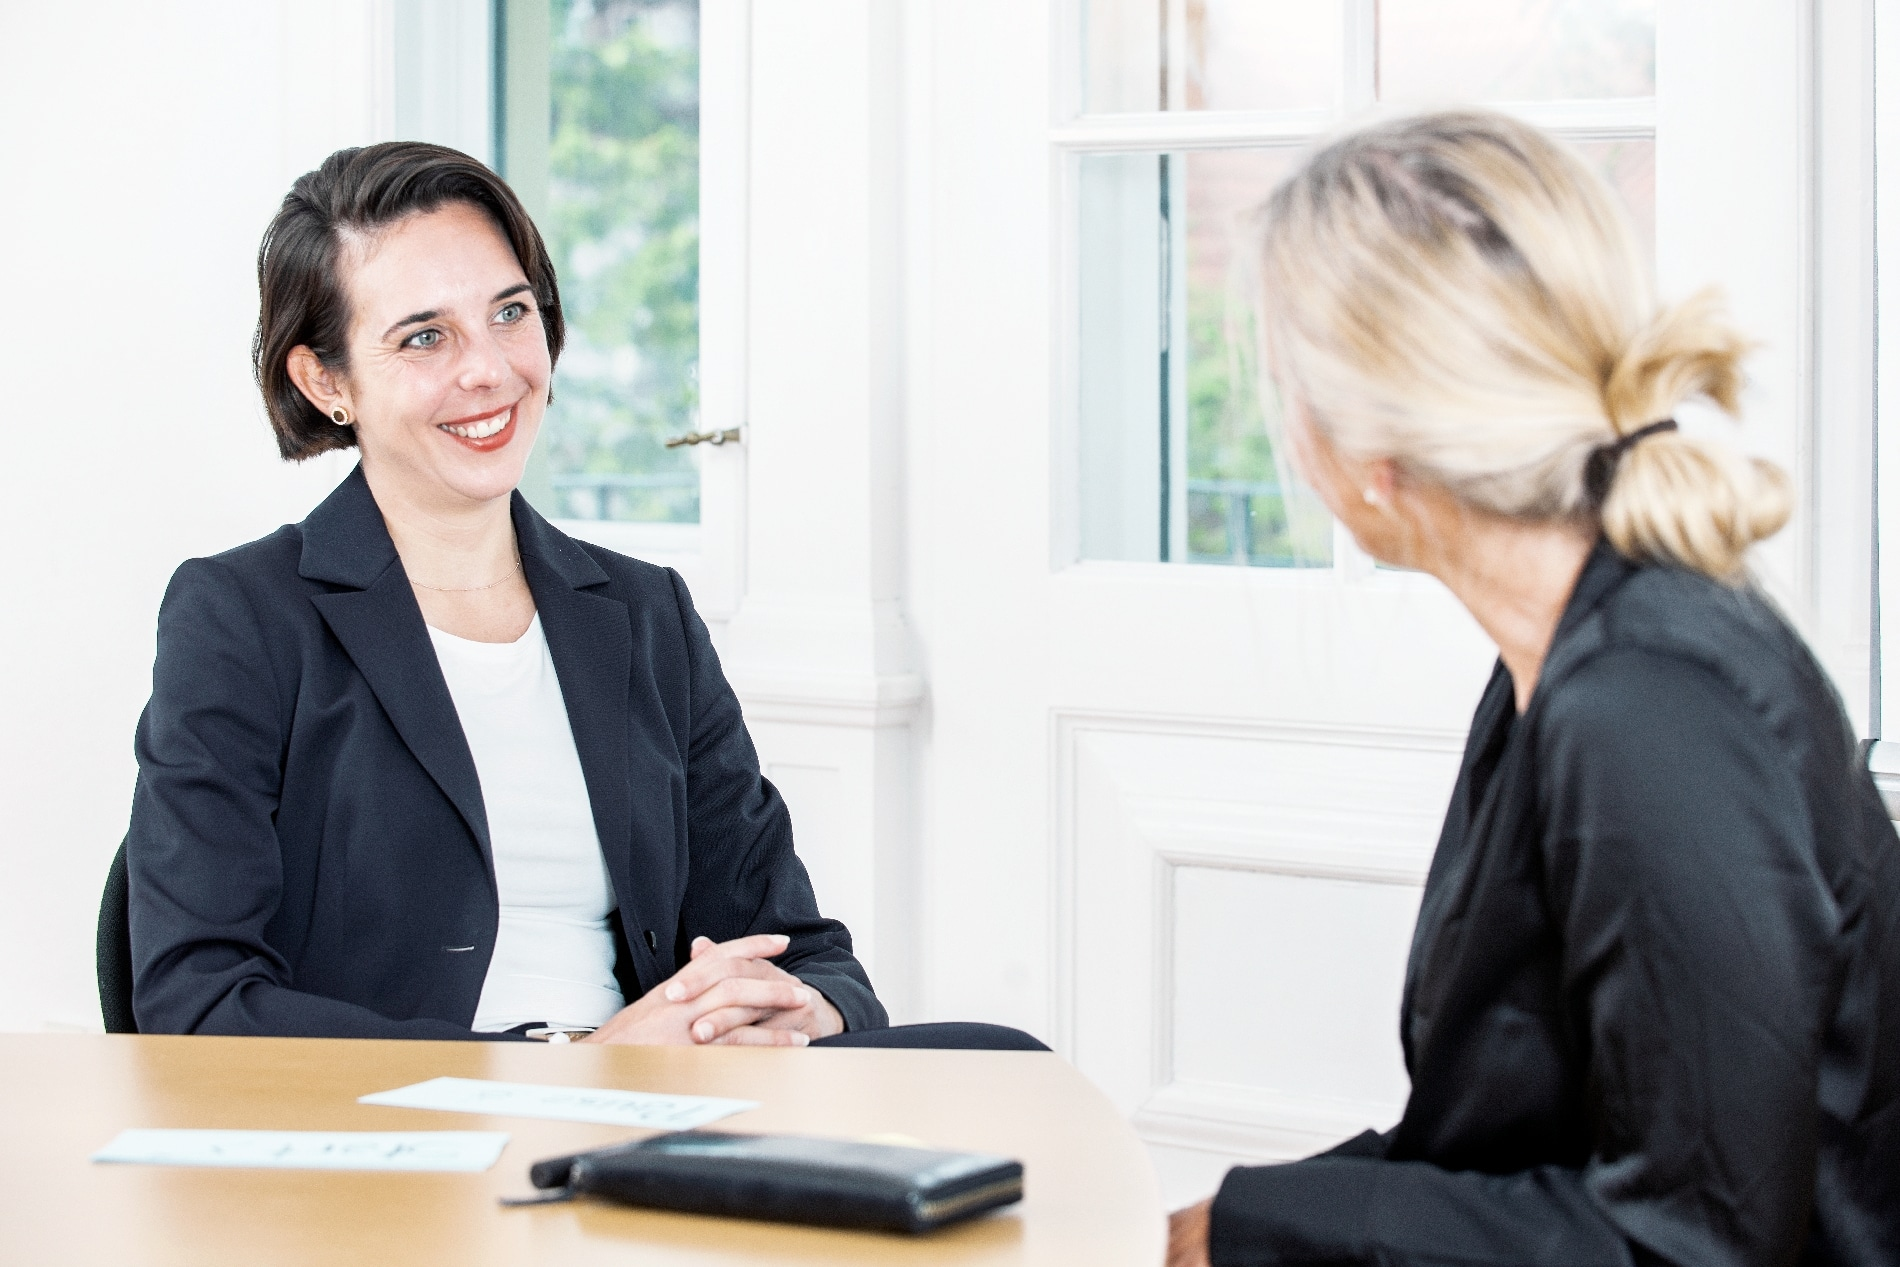 hannover-coaching-in-hannover-business-coaching-hannover-fuerungskraefte-coaching-hannover-persoenlichkeitscoaching-hannover-ines-mikisek-mood-einzel